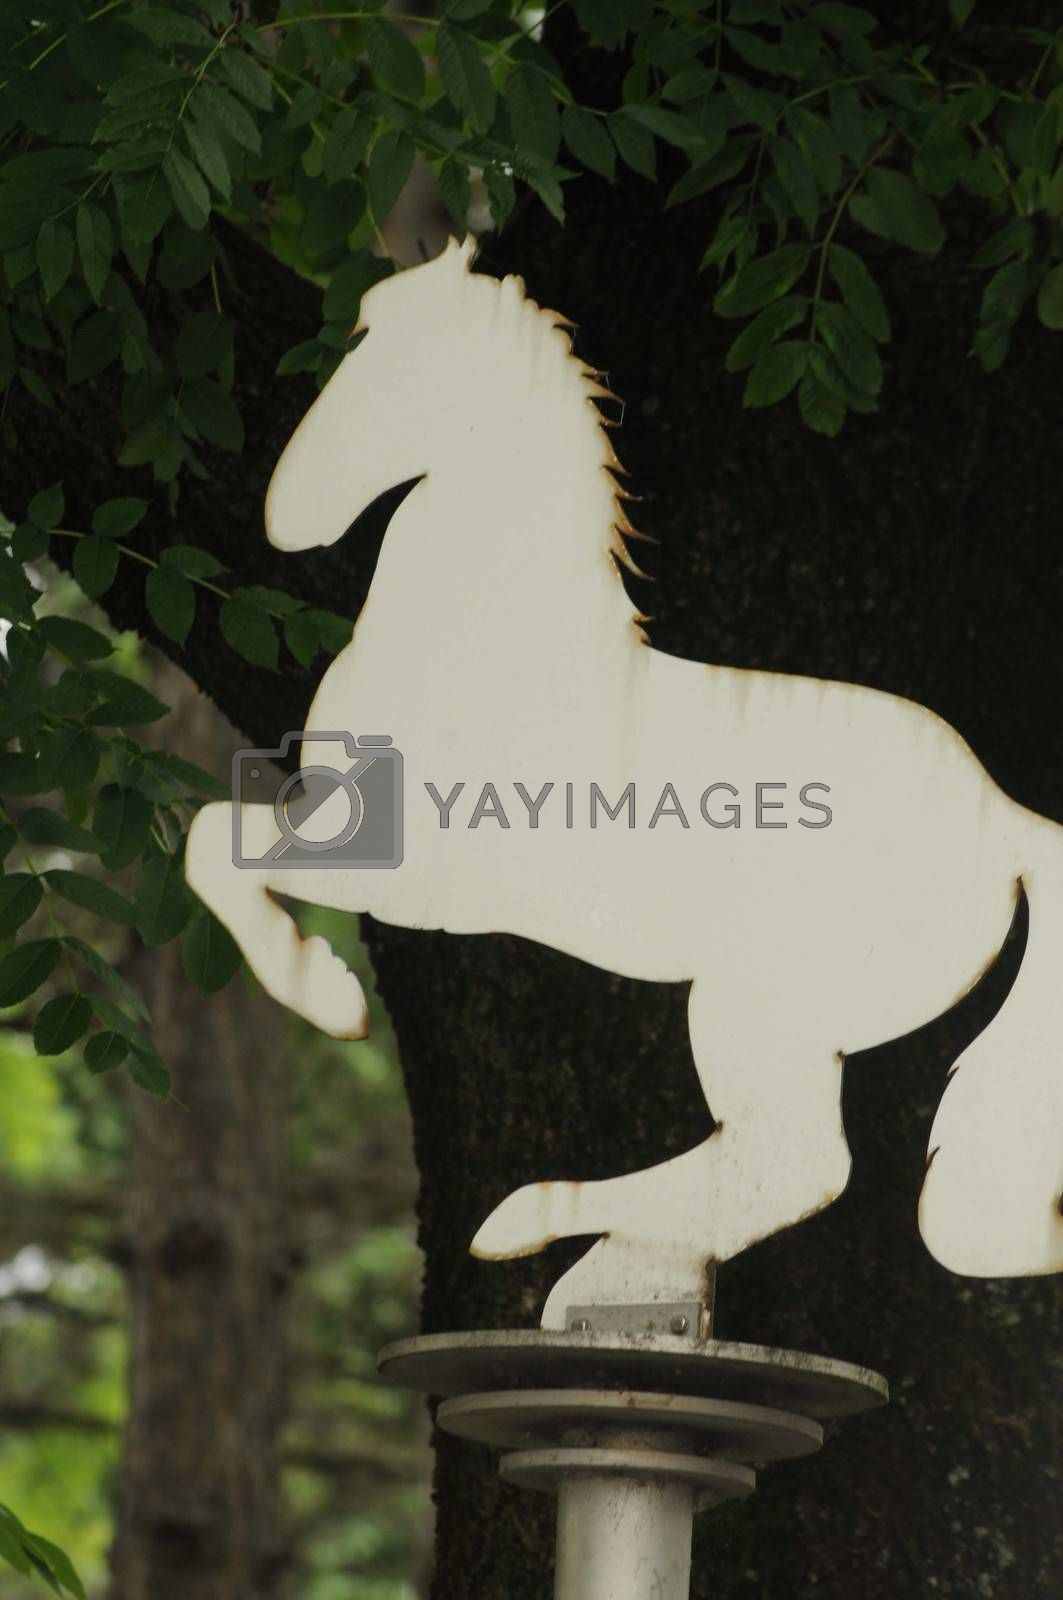 white Lippizan horse breed sign in front of a tree